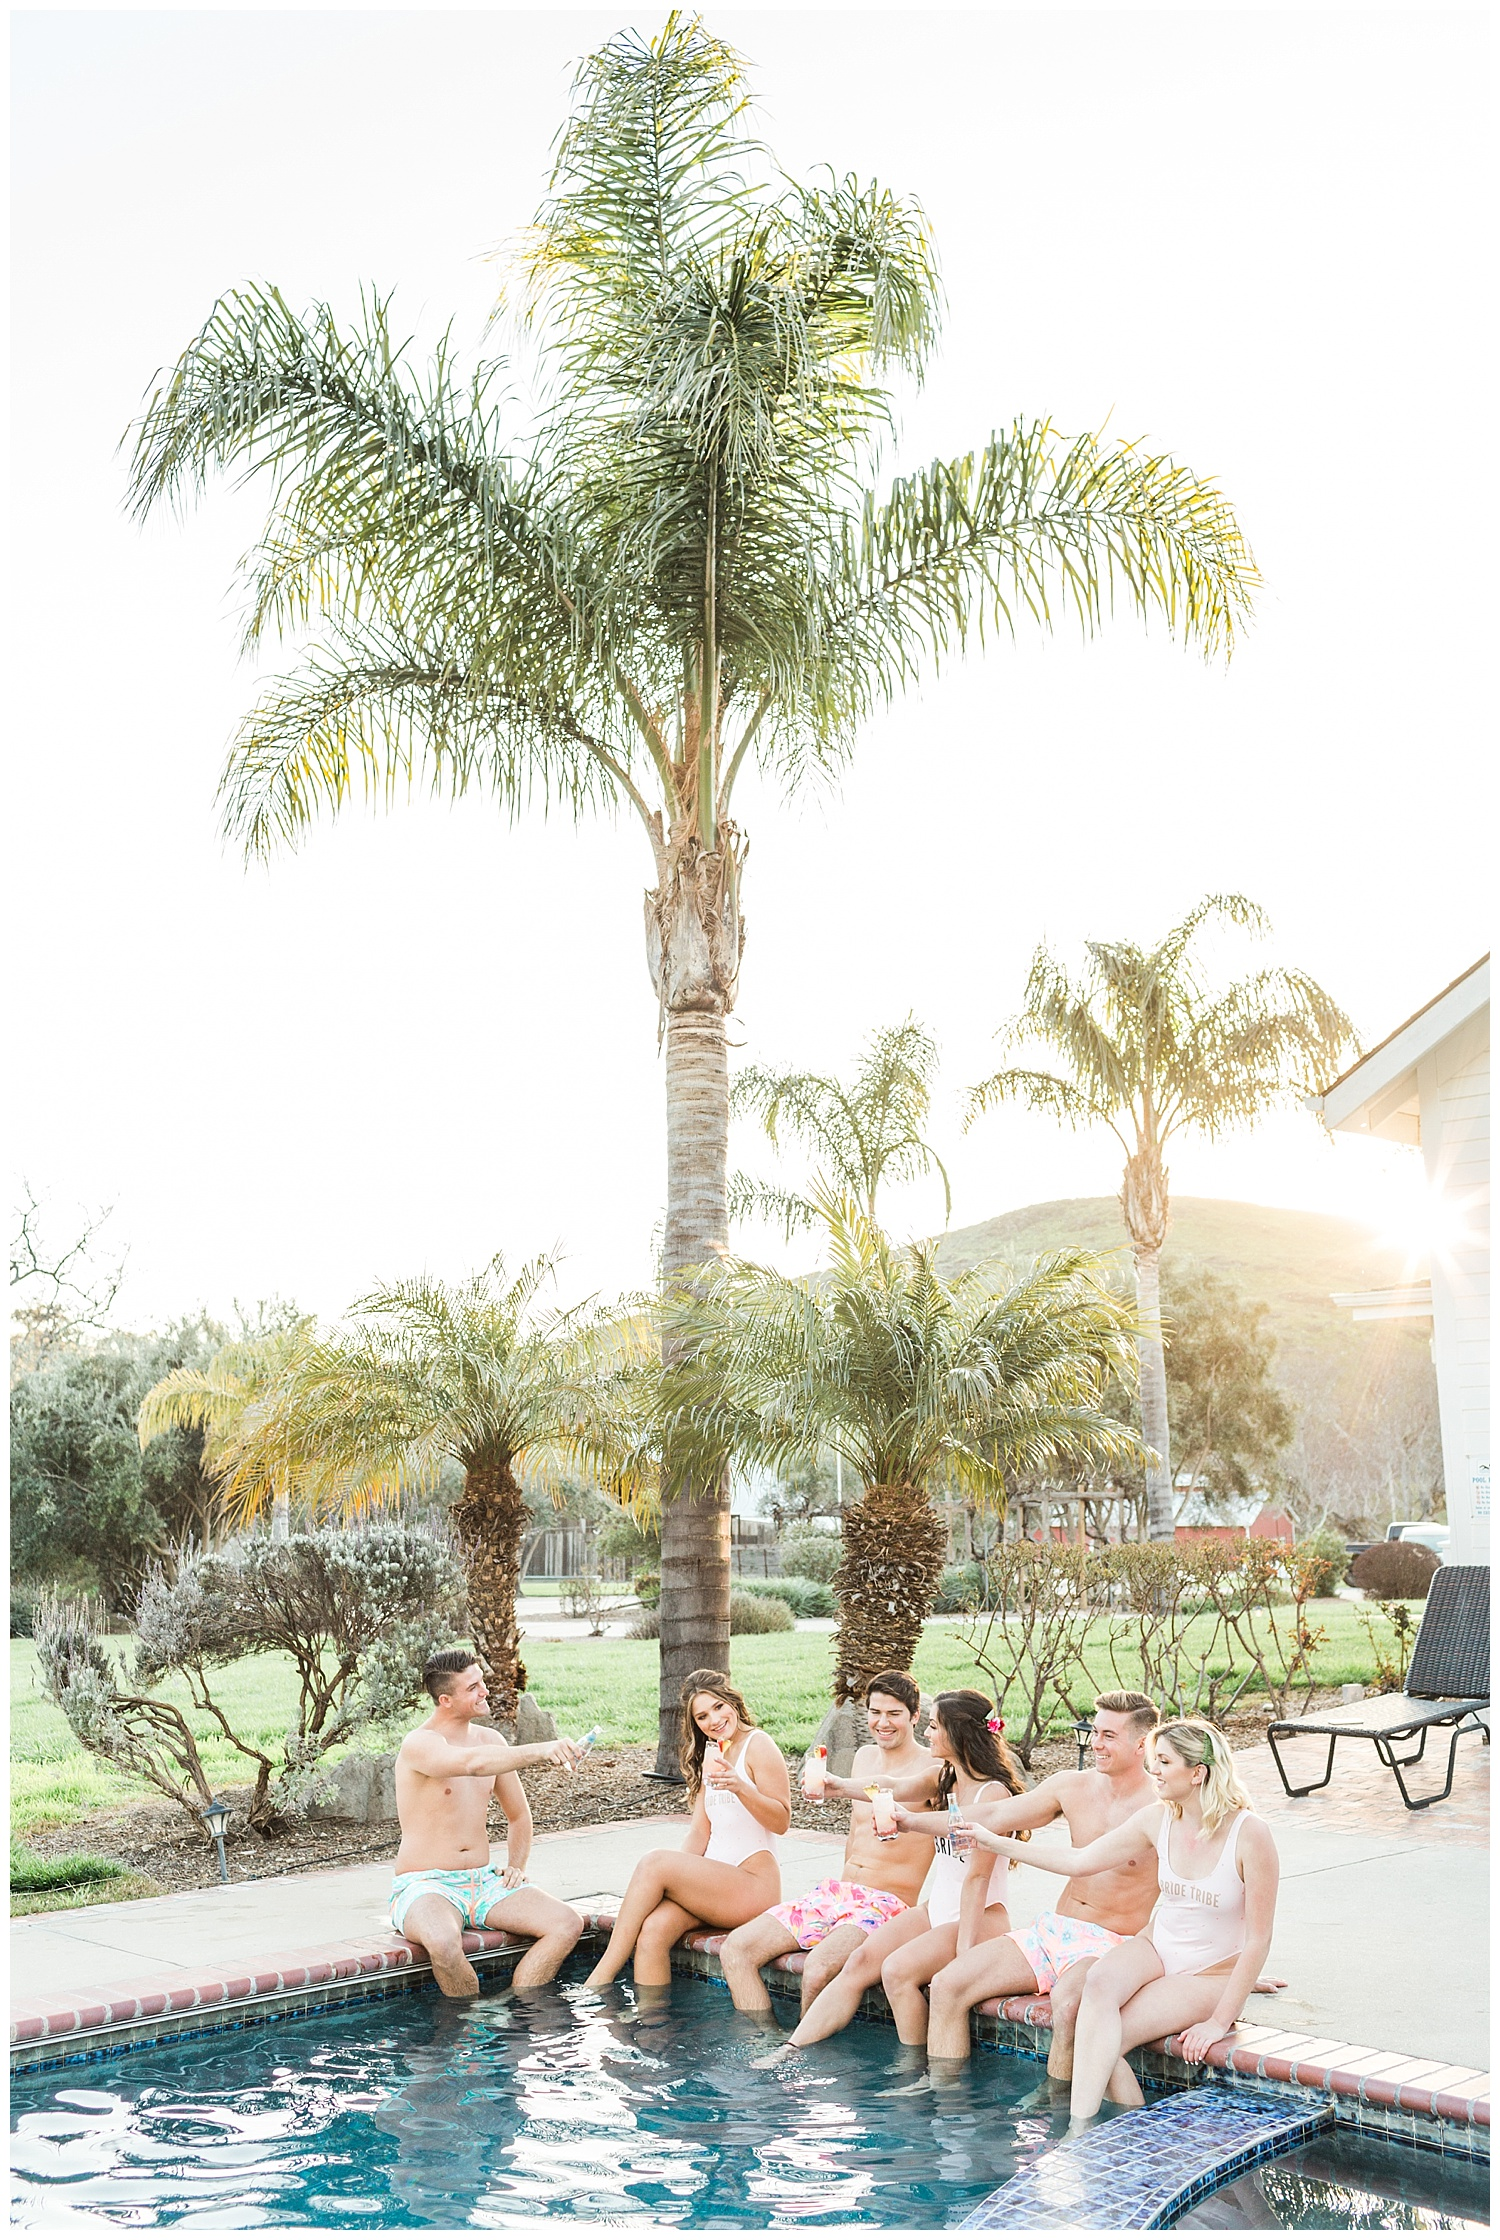 bride-and-groom-squad-poolside-cocktails.jpg